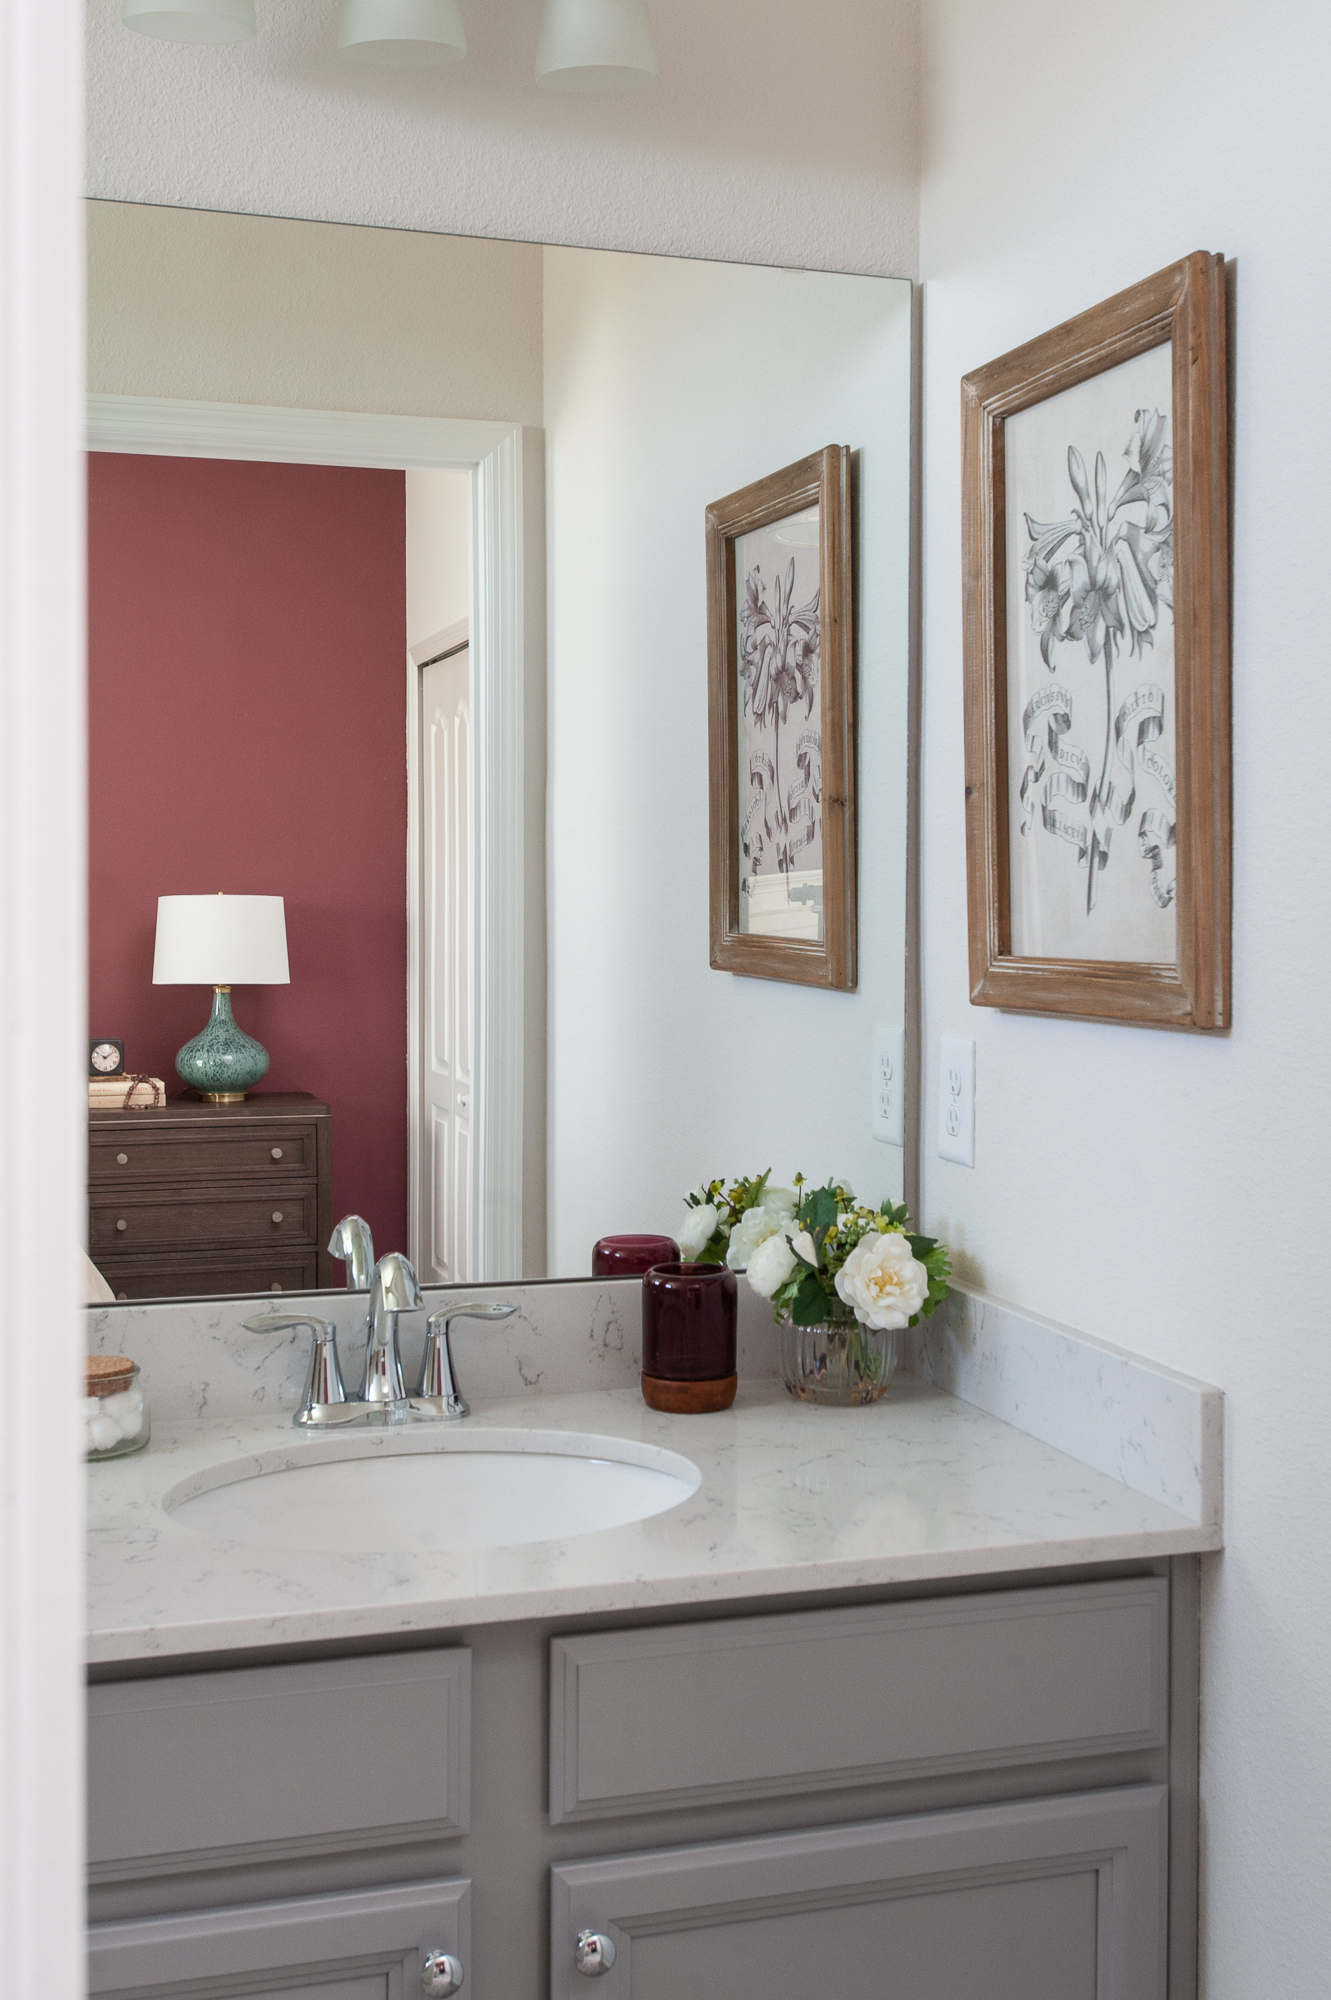 Micamy_Interior Designer_Design_Interior_Model_Merchandising_Guest Bathroom_Accent Wall_Uttemrost_UniversalFurniture_Schumacher_AmityBedding_Lennar_Blog.jpg